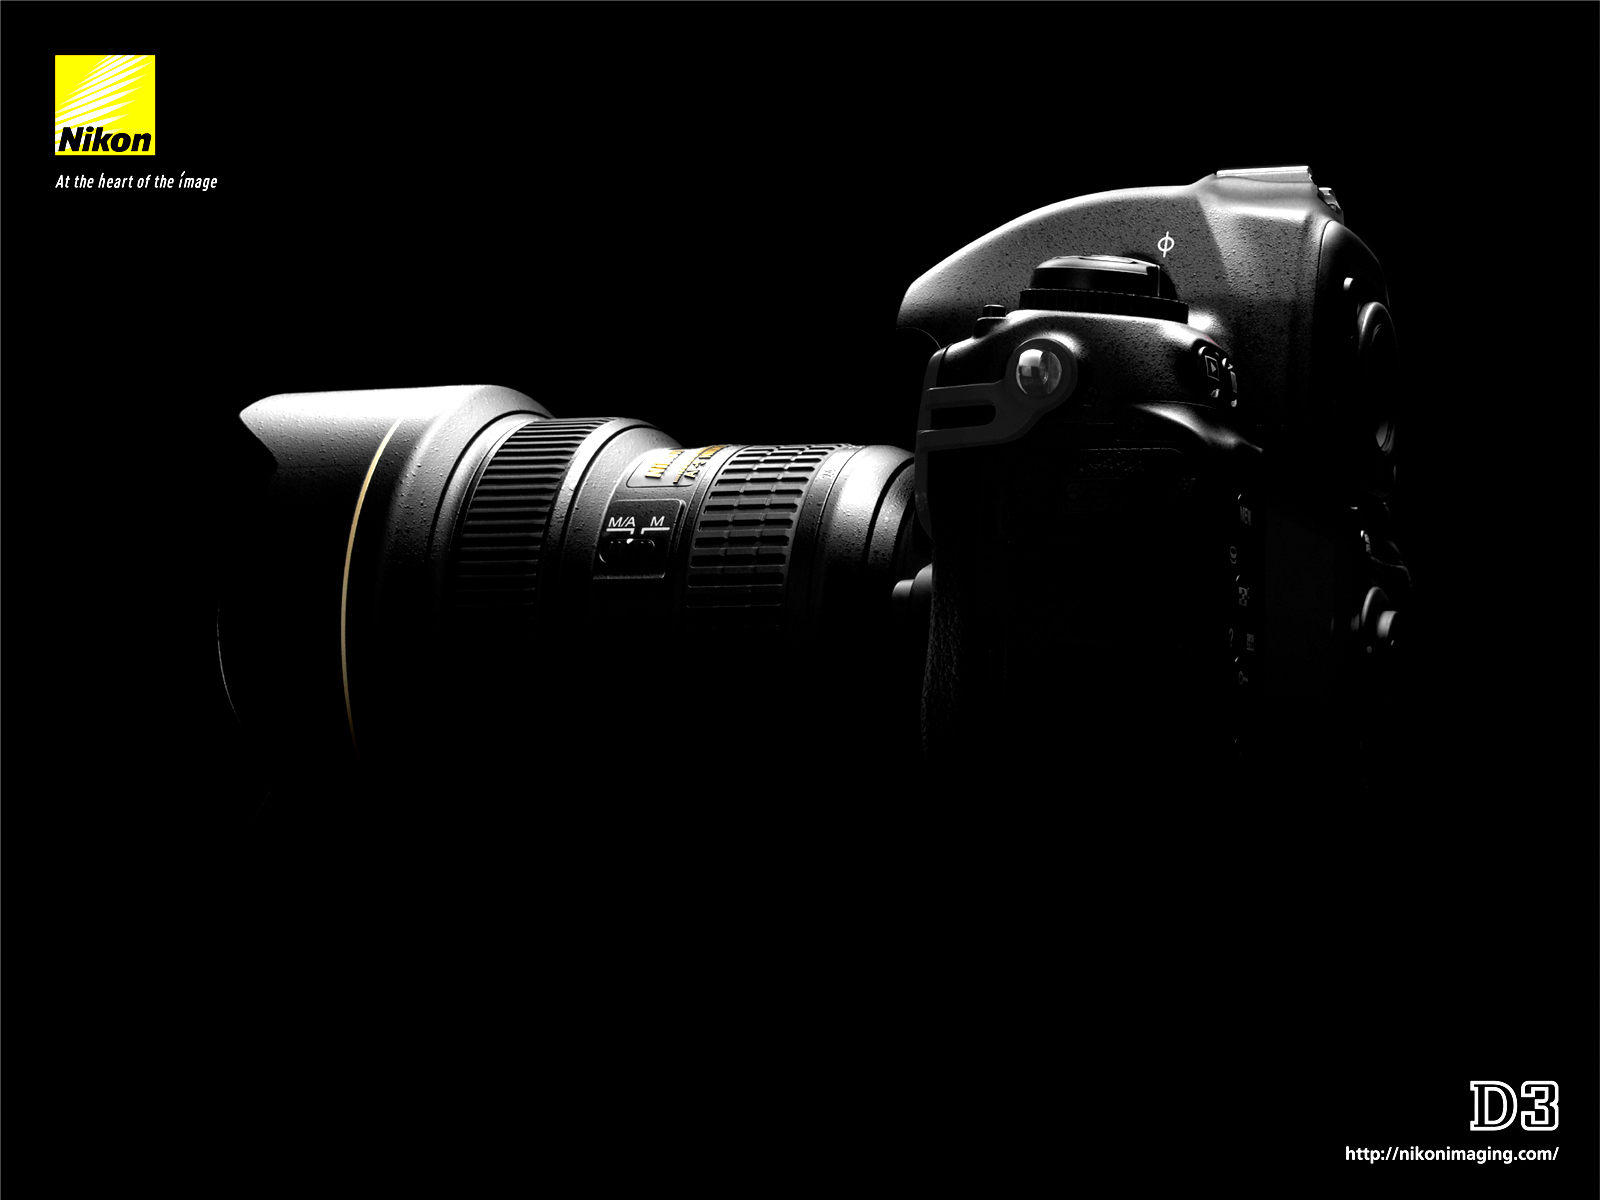 Nikon Digital Slr Images Nikon D3 Hd Wallpaper And Background Photos